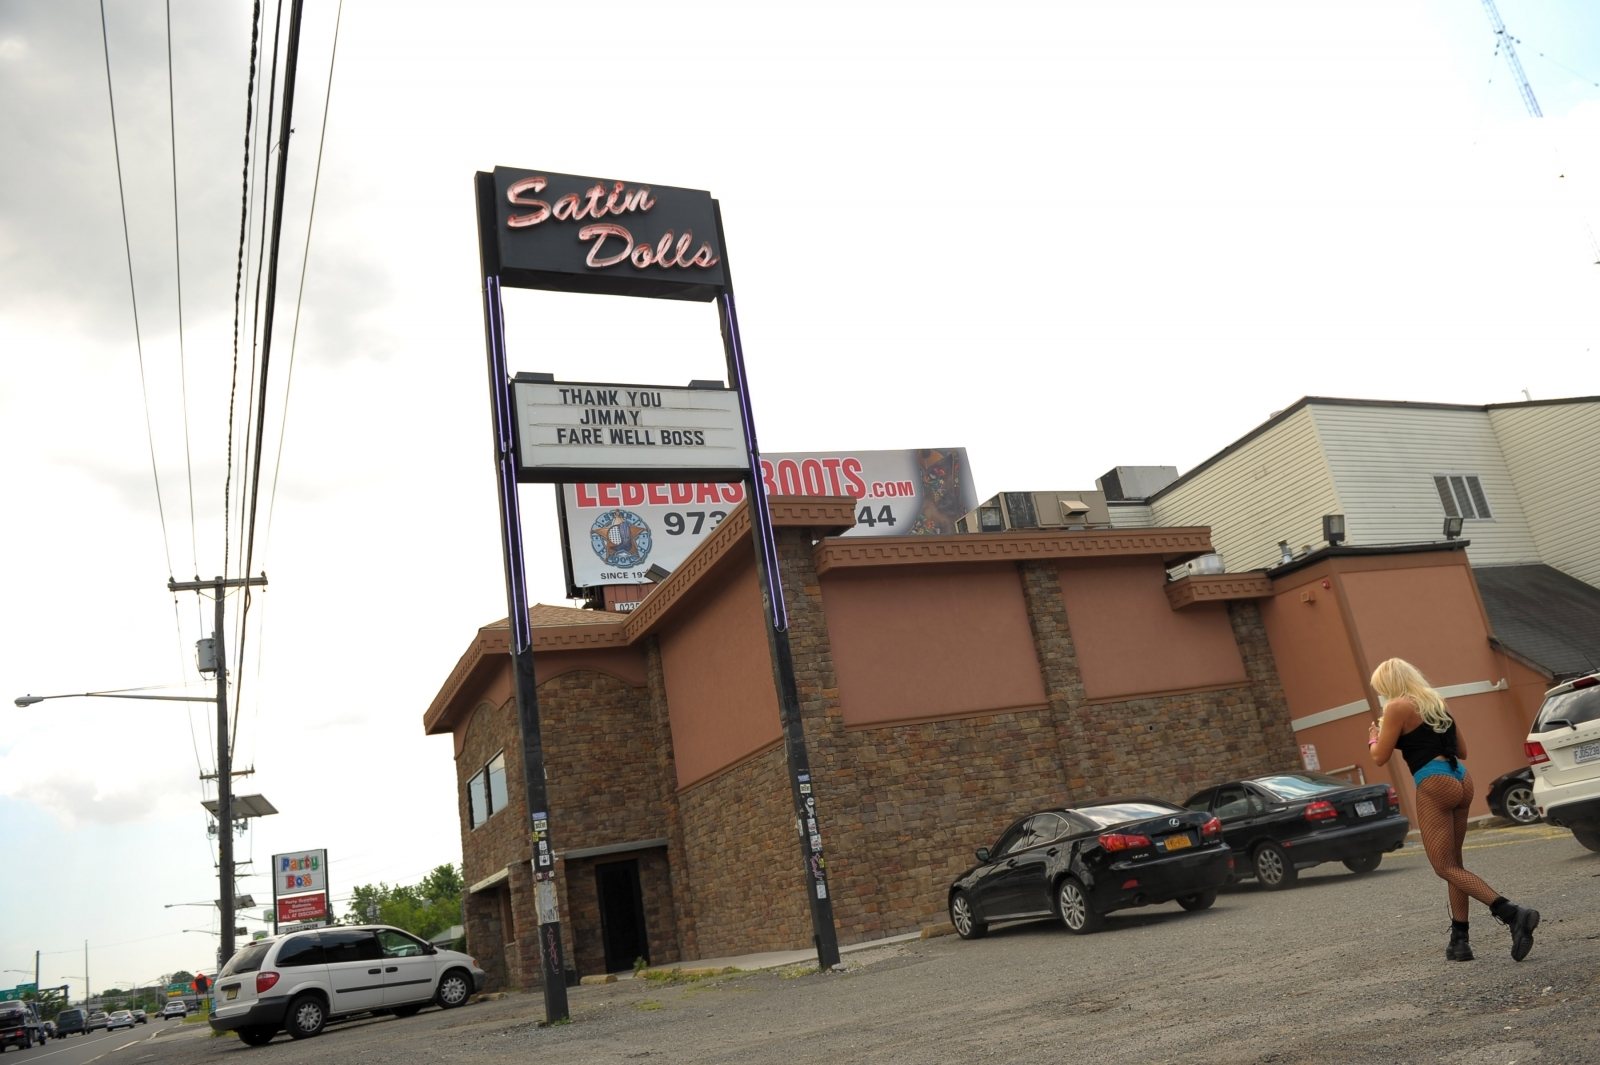 New Jersey whacks 'Sopranos' strip club amid criminal investigation